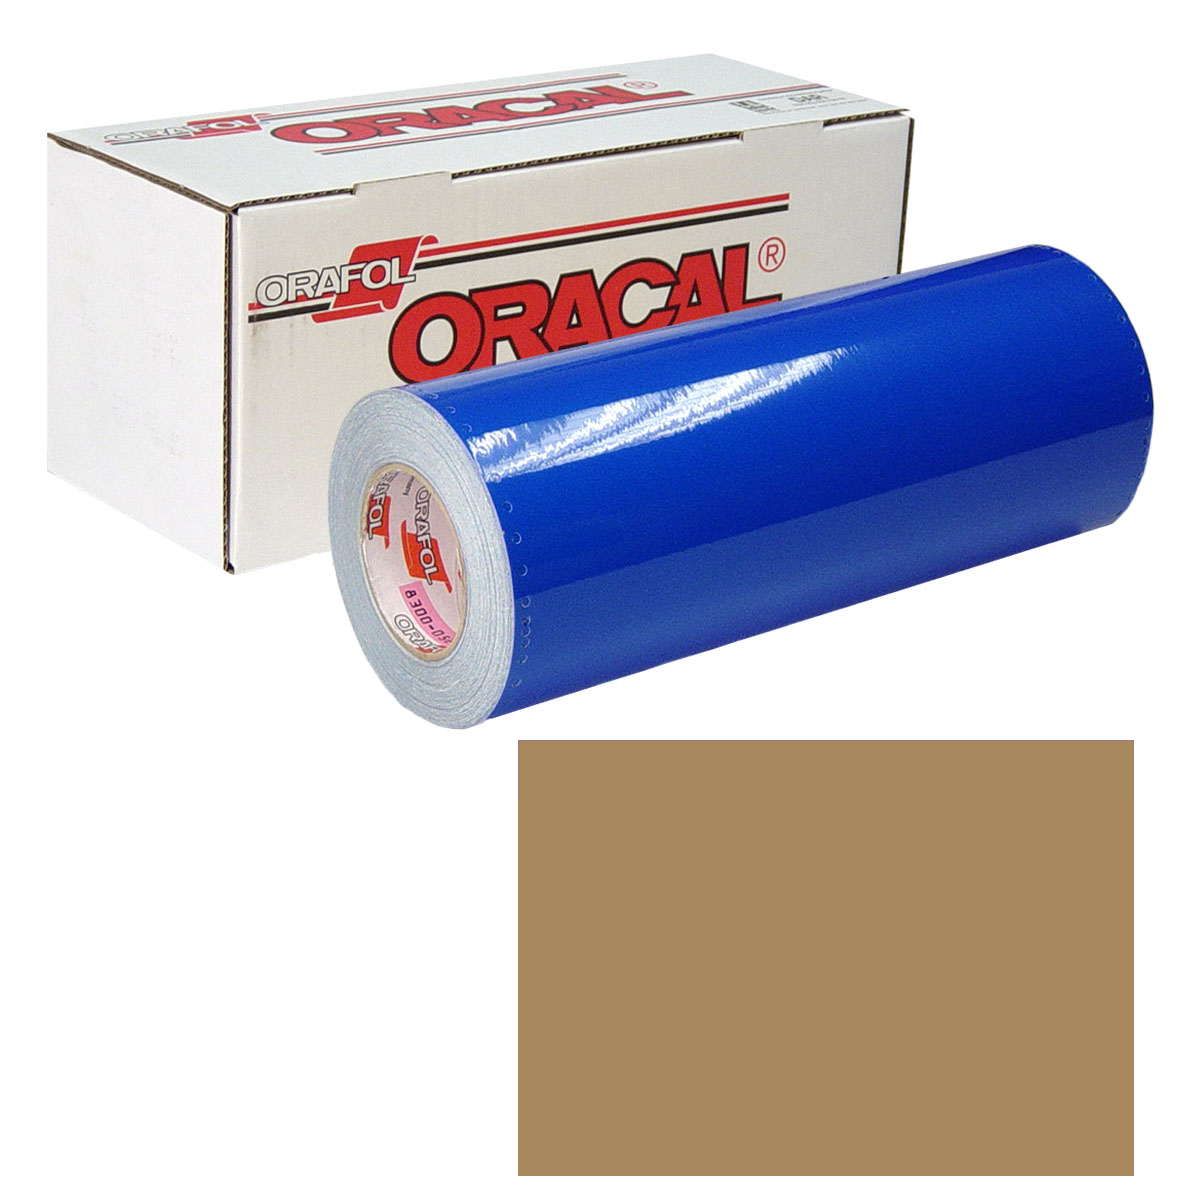 ORACAL 631 Unp 48in X 10yd 081 Light Brown